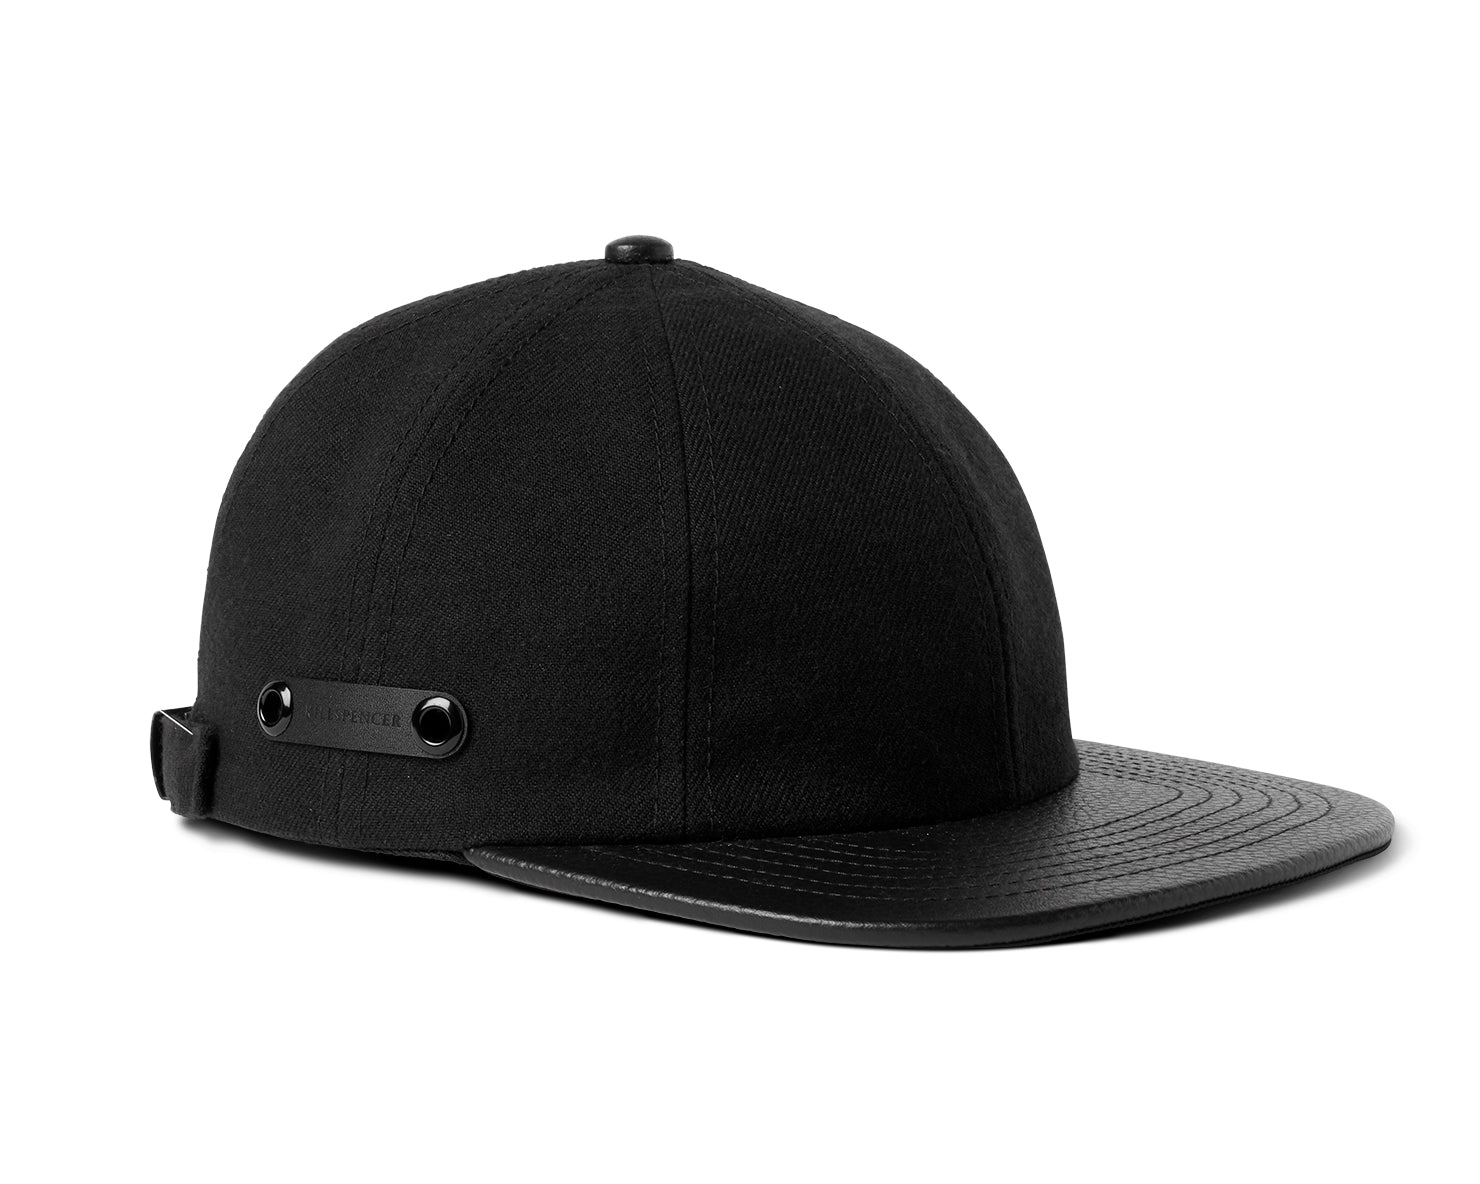 8 PANEL HAT | KILLSPENCER® - Black Leather